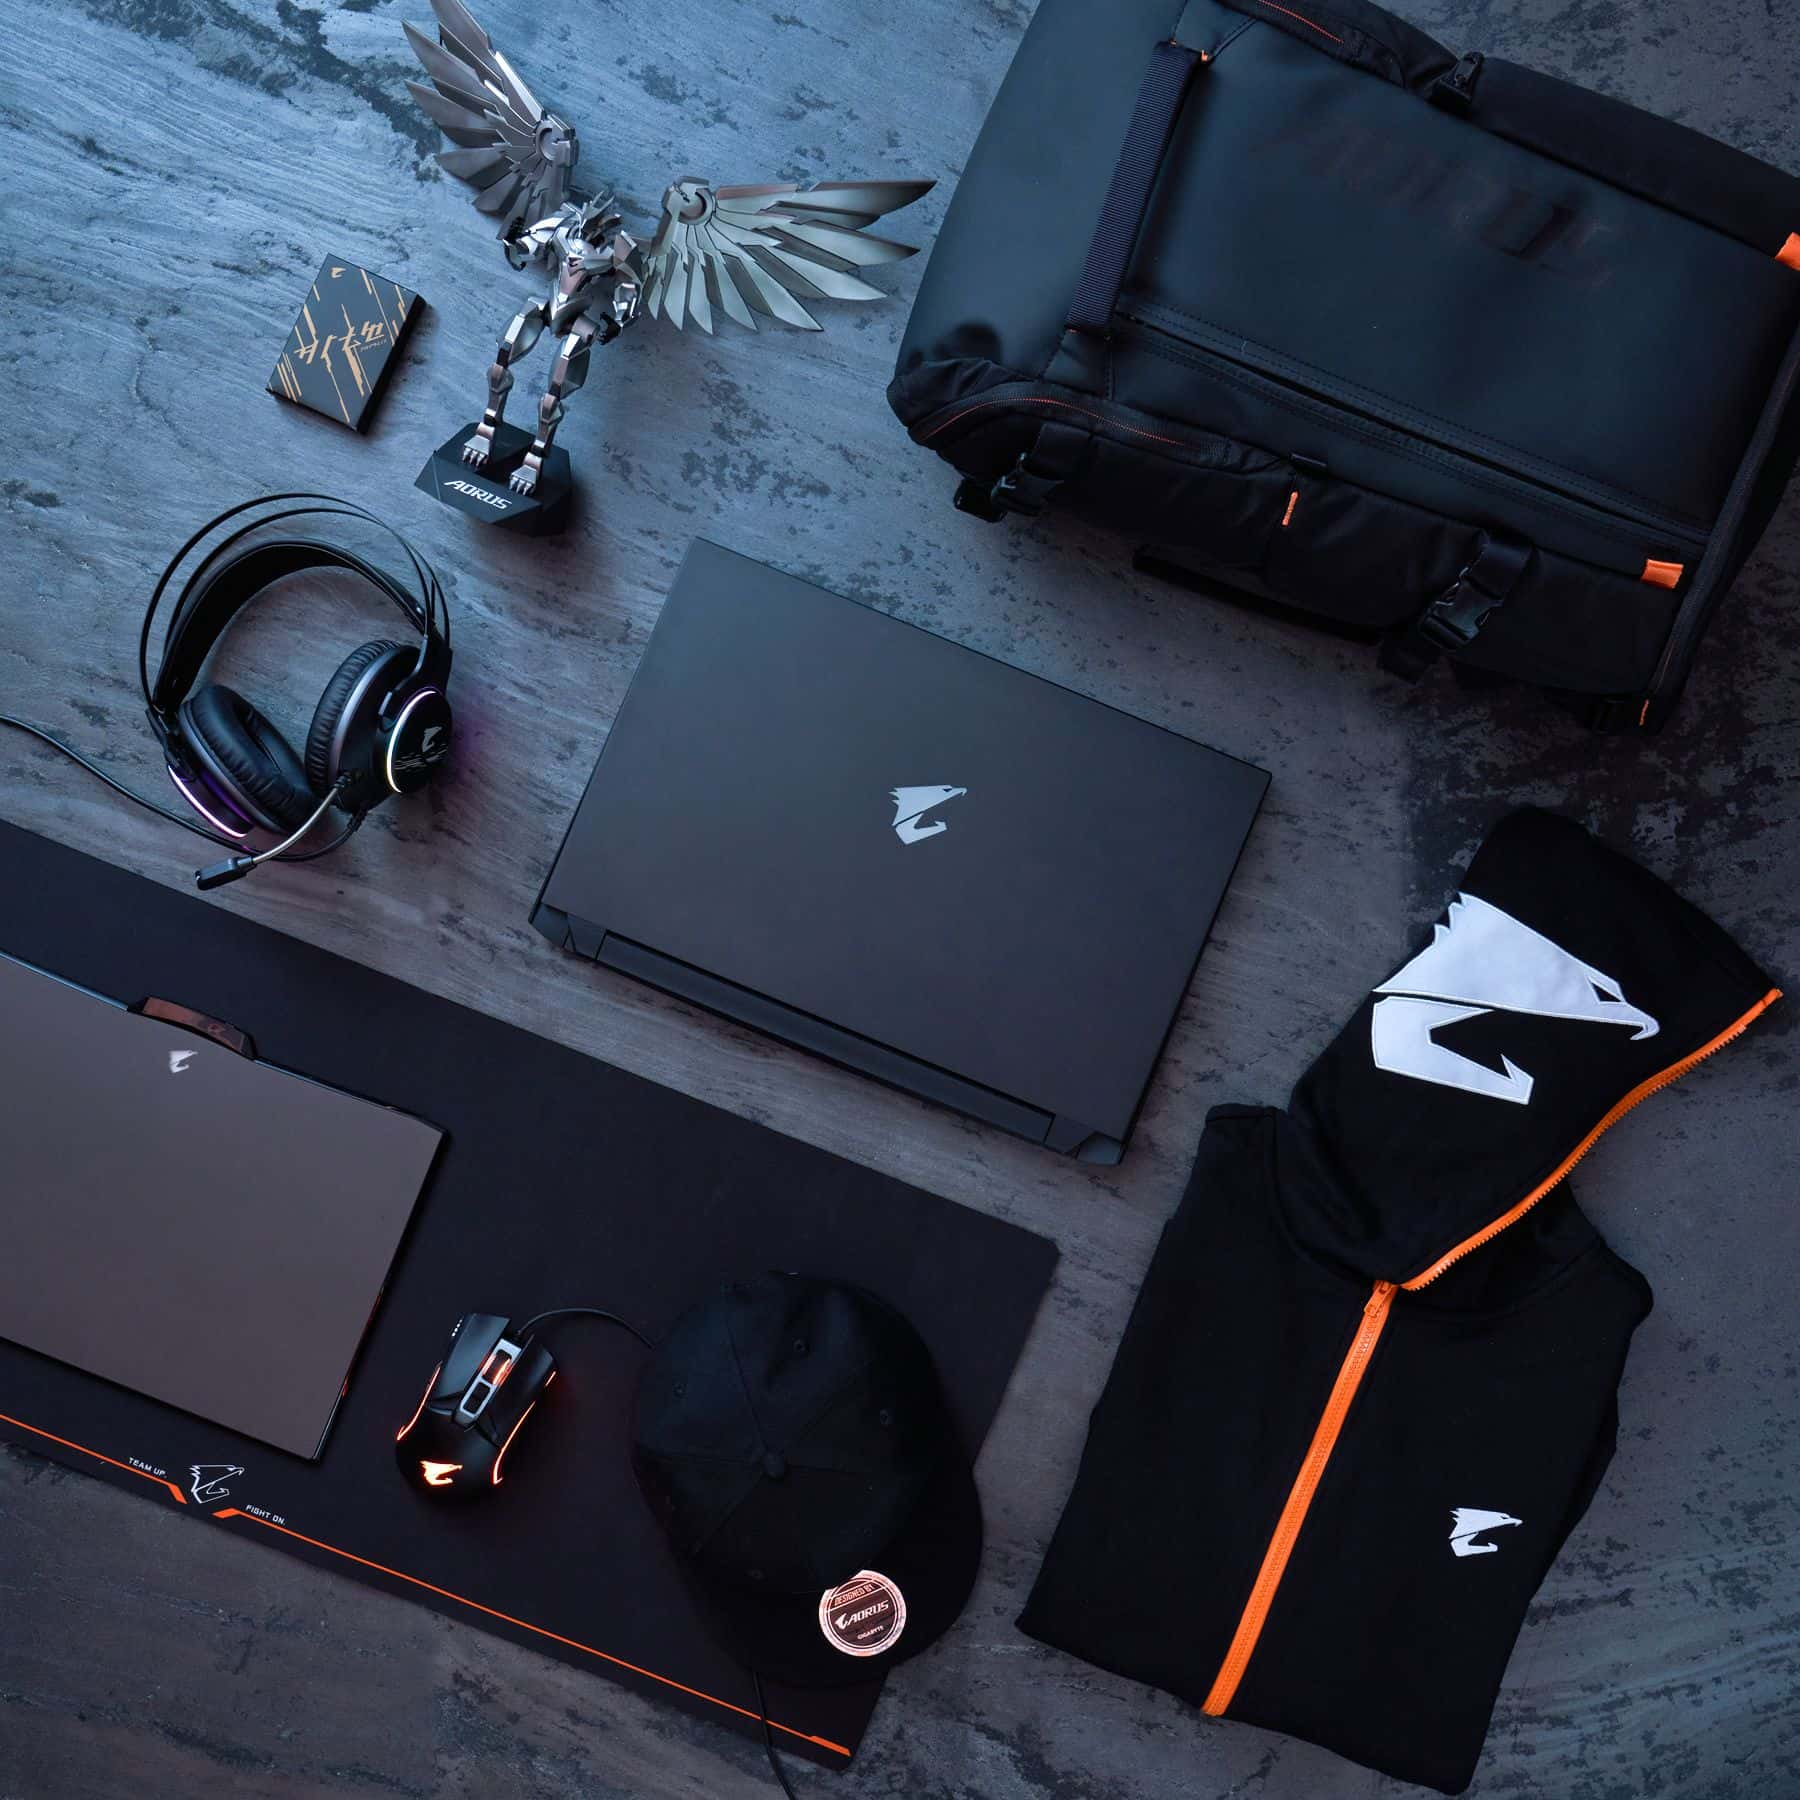 6 Things to Think About before Buying Your Gaming Laptop